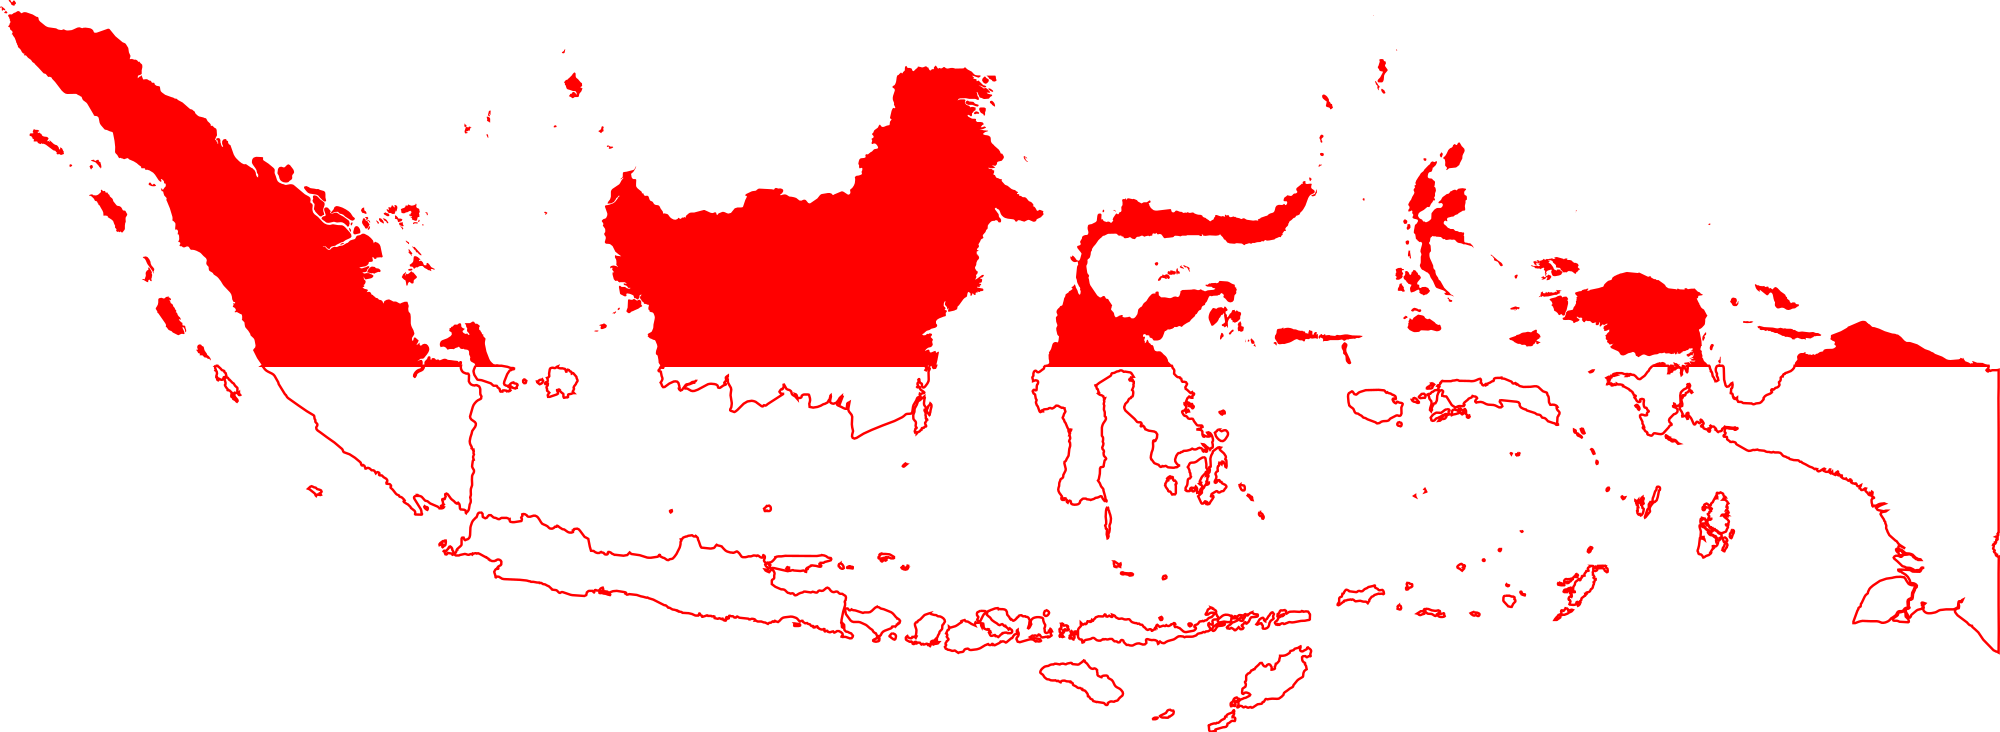 Indonesia Png Free Indonesia Png Transparent Images 6571 Pngio